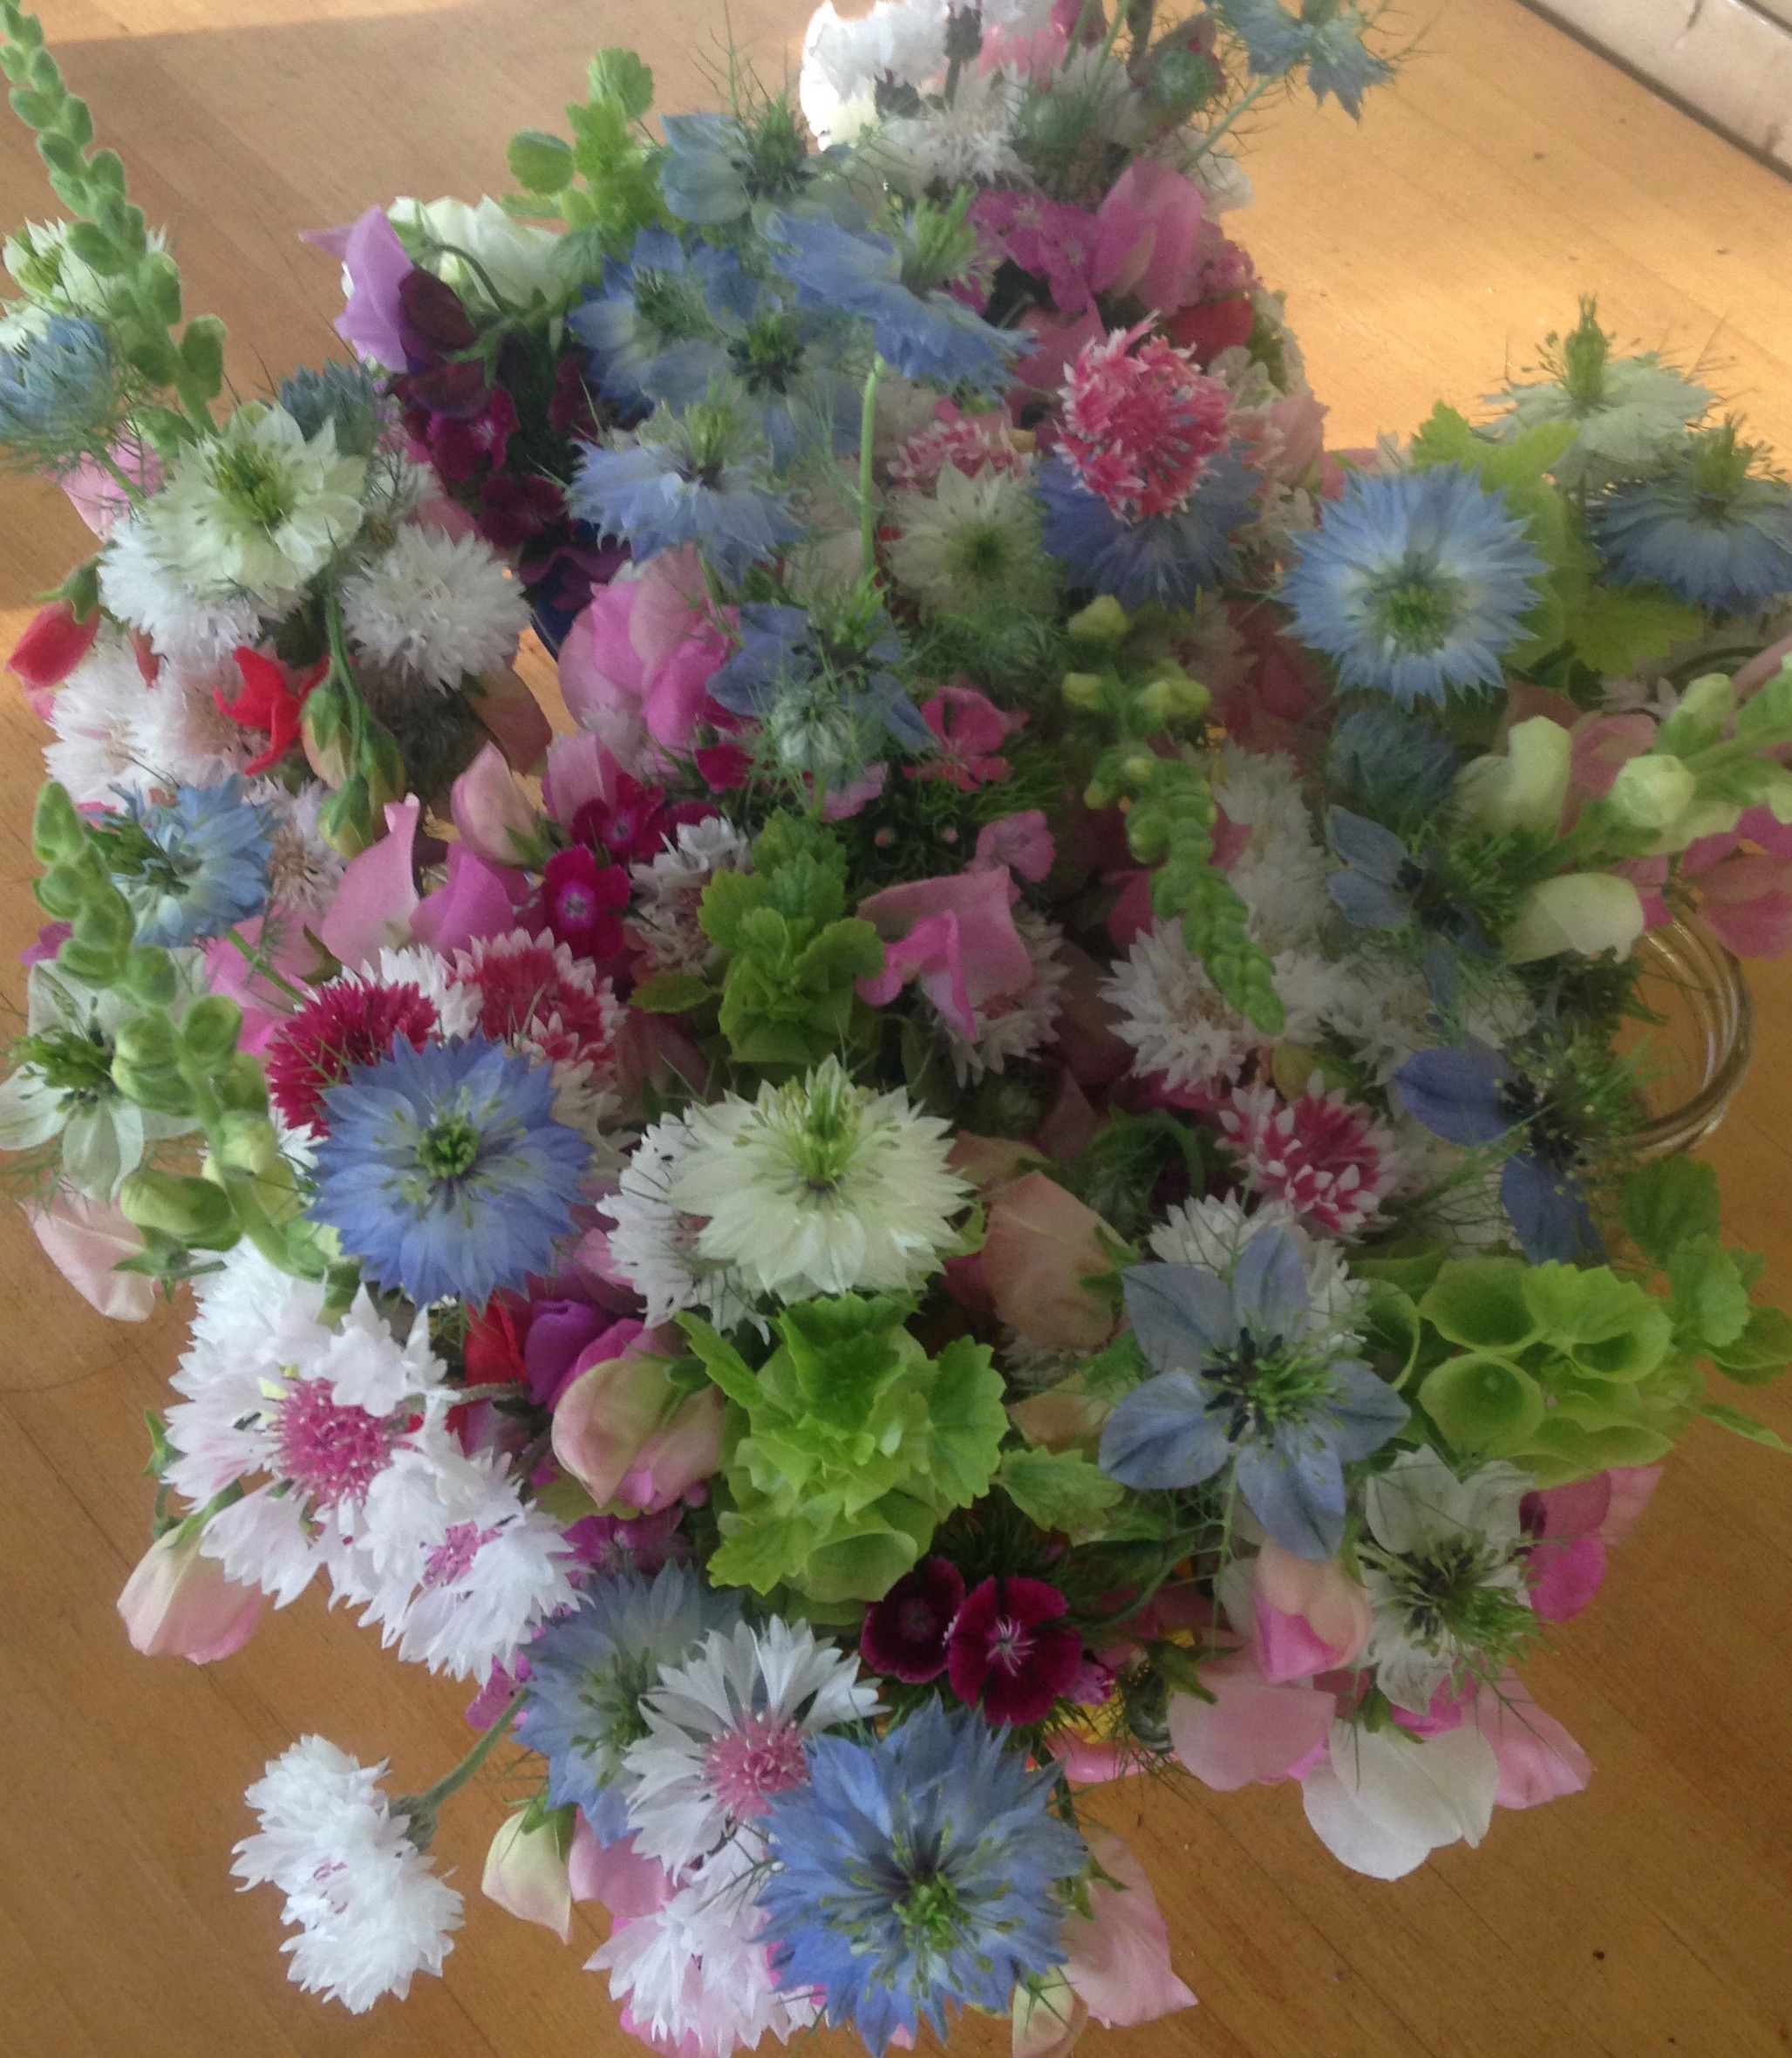 Nigella, Dianthus, Bells of Ireland, Bachlor Buttons